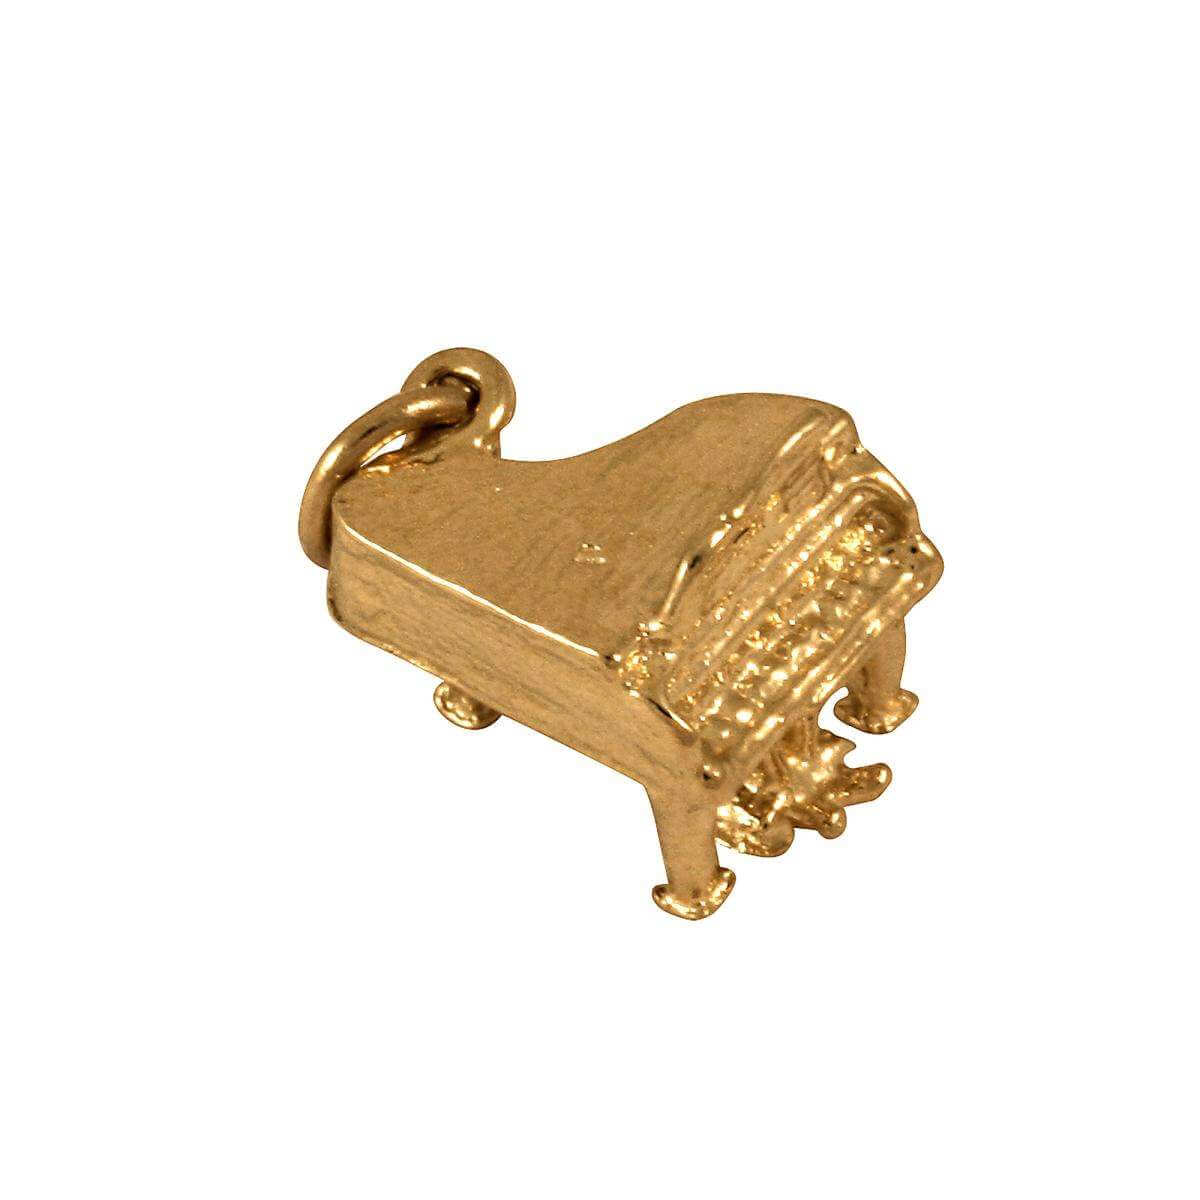 9ct Gold Piano Charm